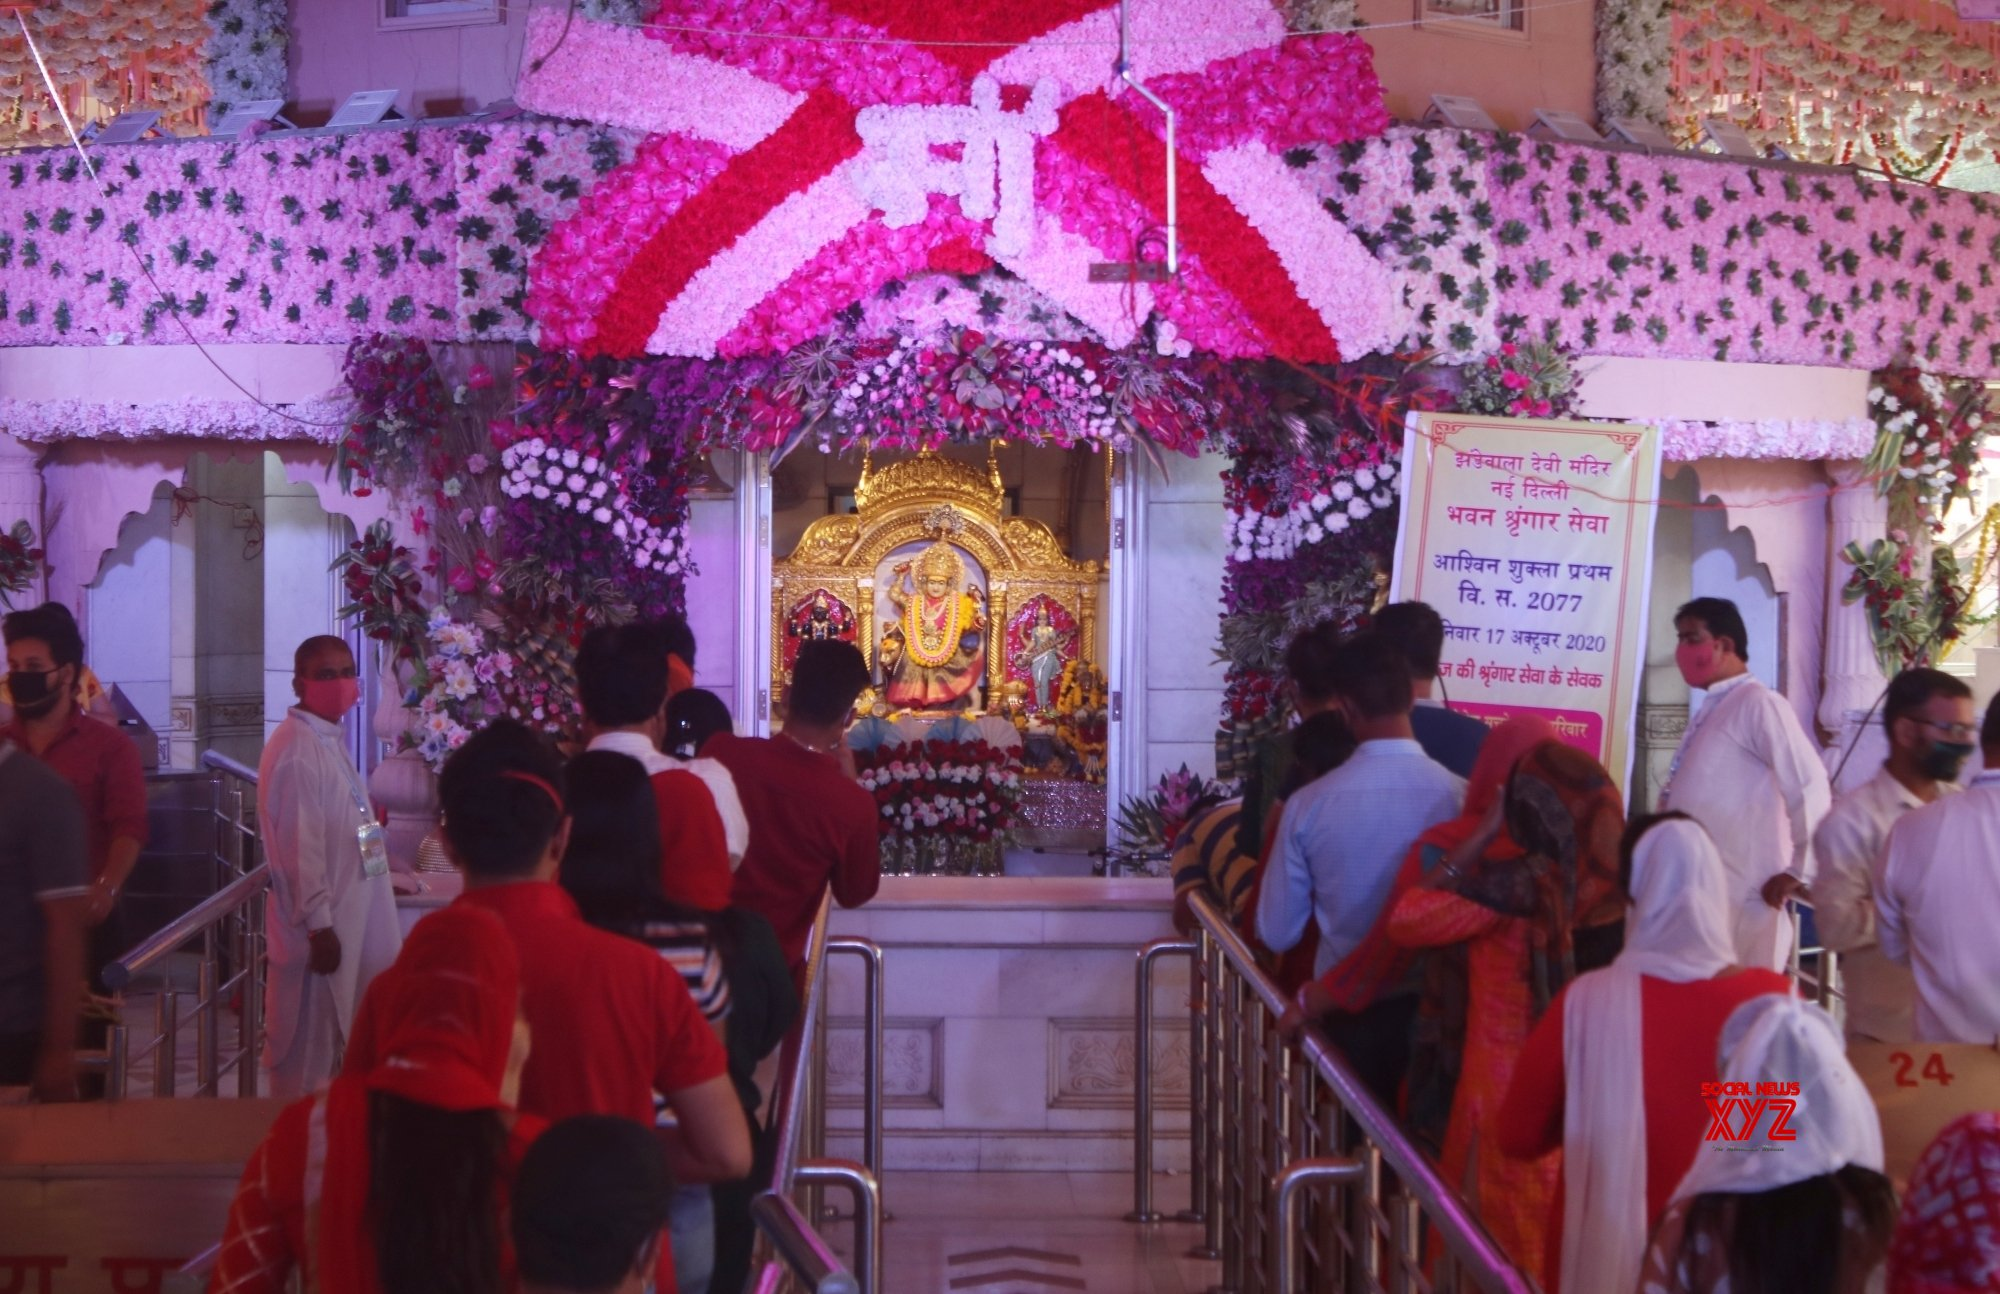 New Delhi: Devotees throng Jhandewalan Temple on first day of Navaratri #Gallery